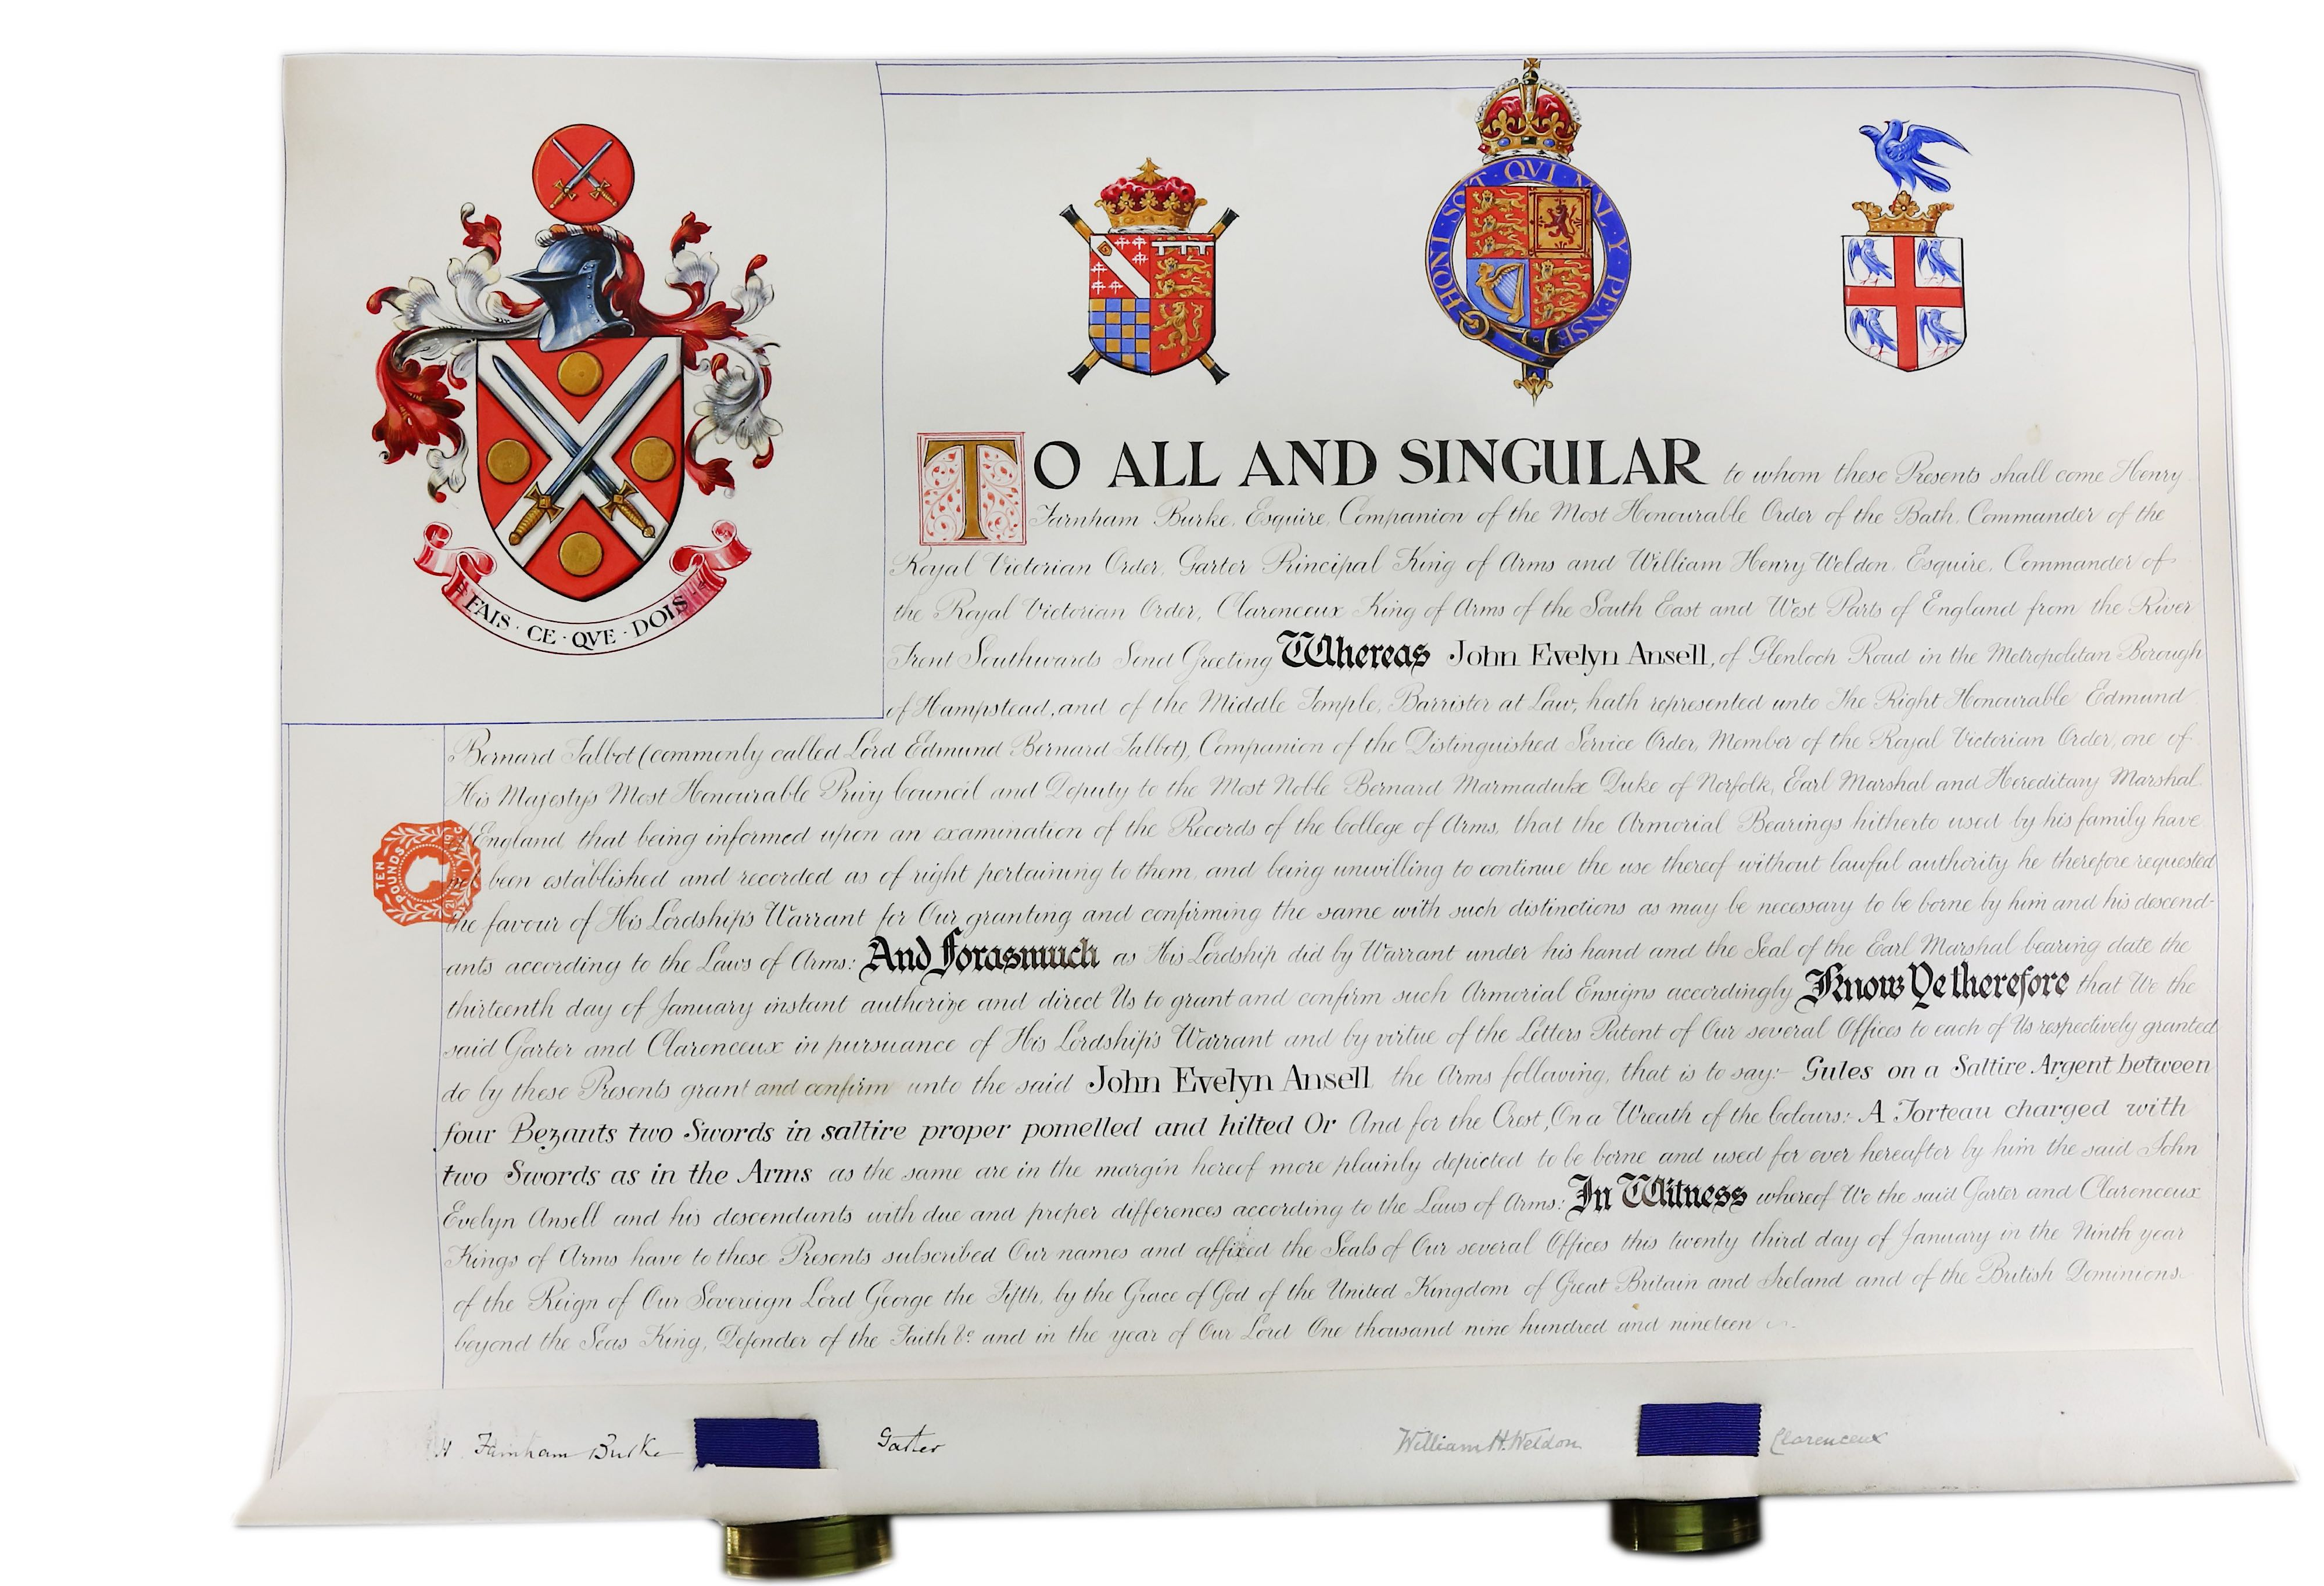 Lot 209 - Grant of Arms.-John Evelyn Ansell Grant of Arms issued by Henry Farnham Burke, Garter Principal